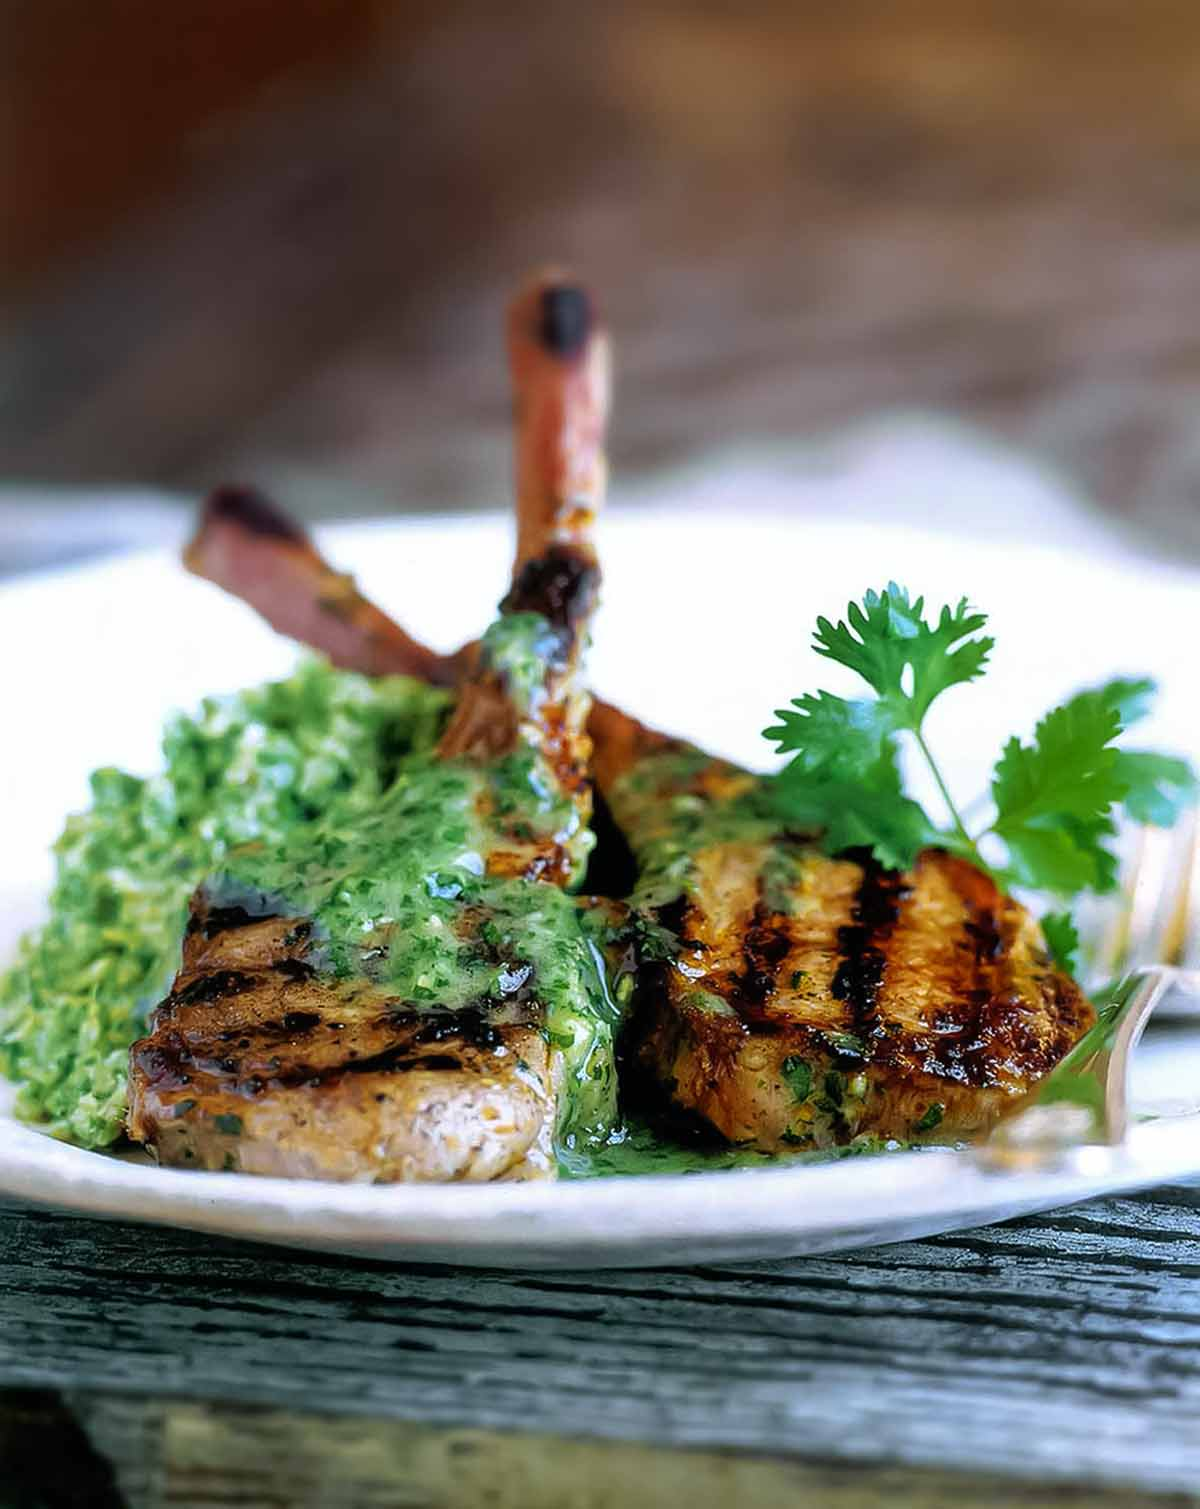 Two grilled lamb chops with cilantro-mint sauce on a white plate with a fork and a sprig of cilantro to garnish.